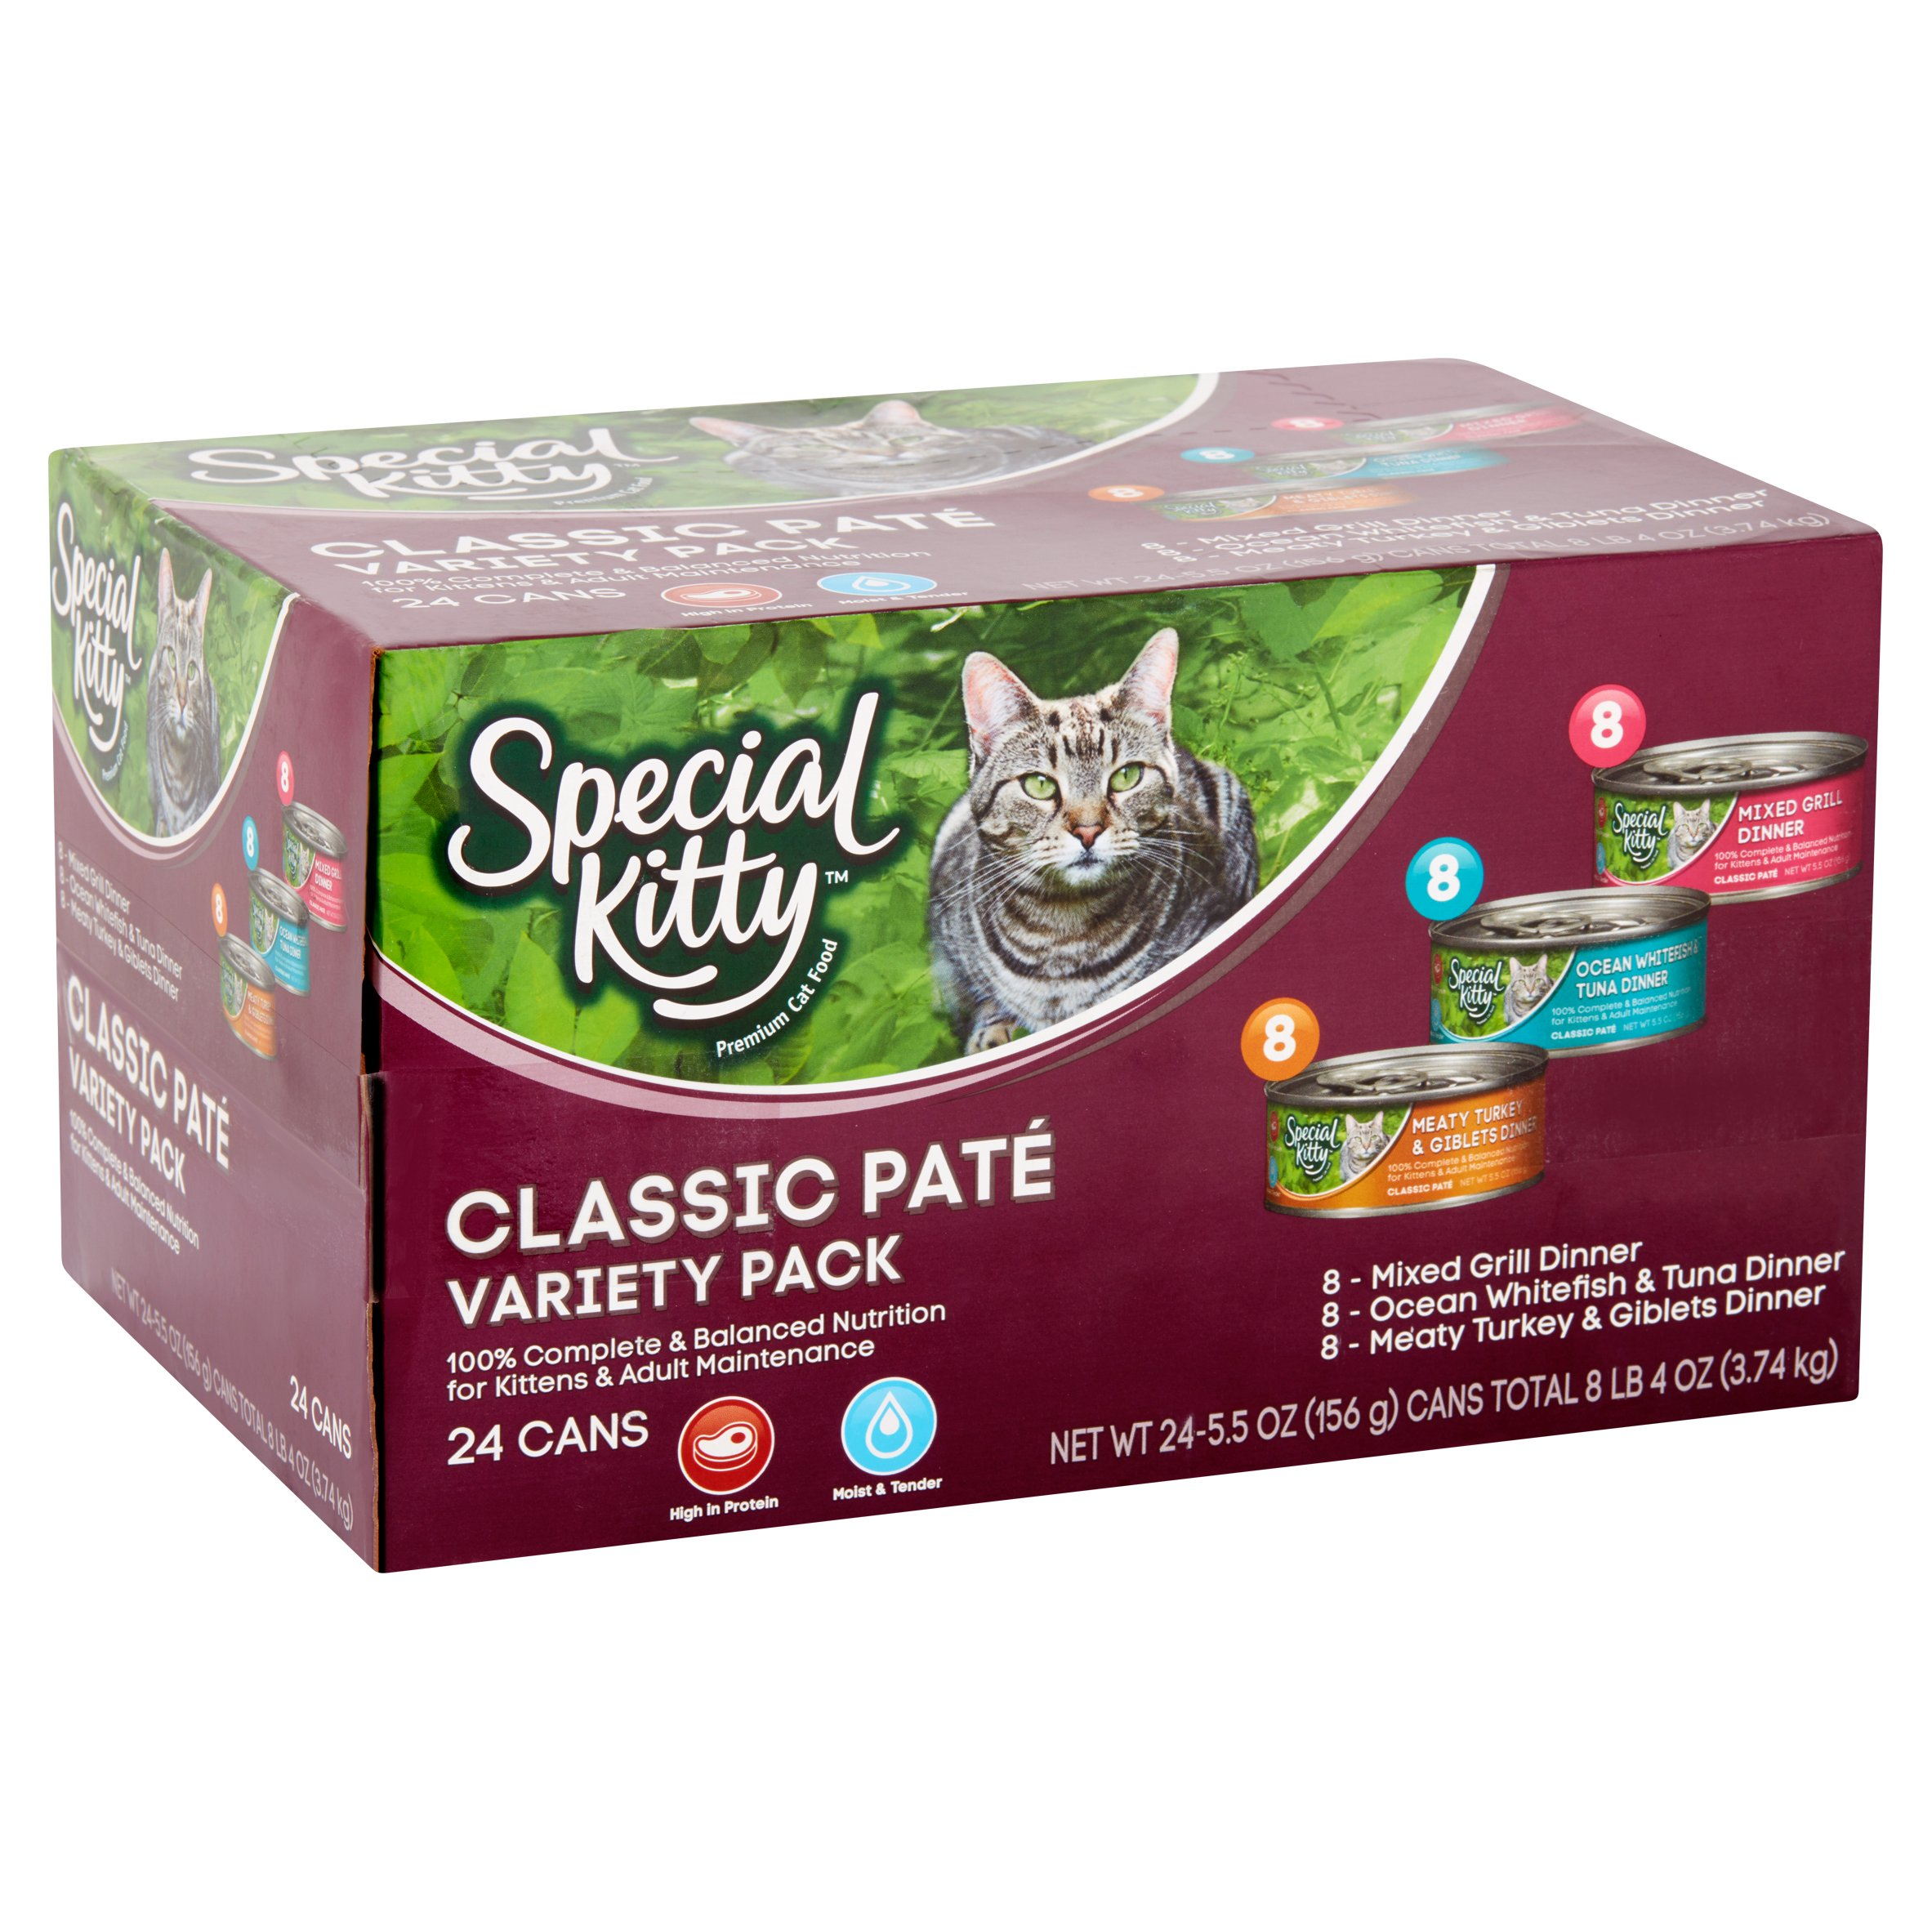 Special Kitty Classic Pate Variety Pack Wet Cat Food 5 5 Oz Cans